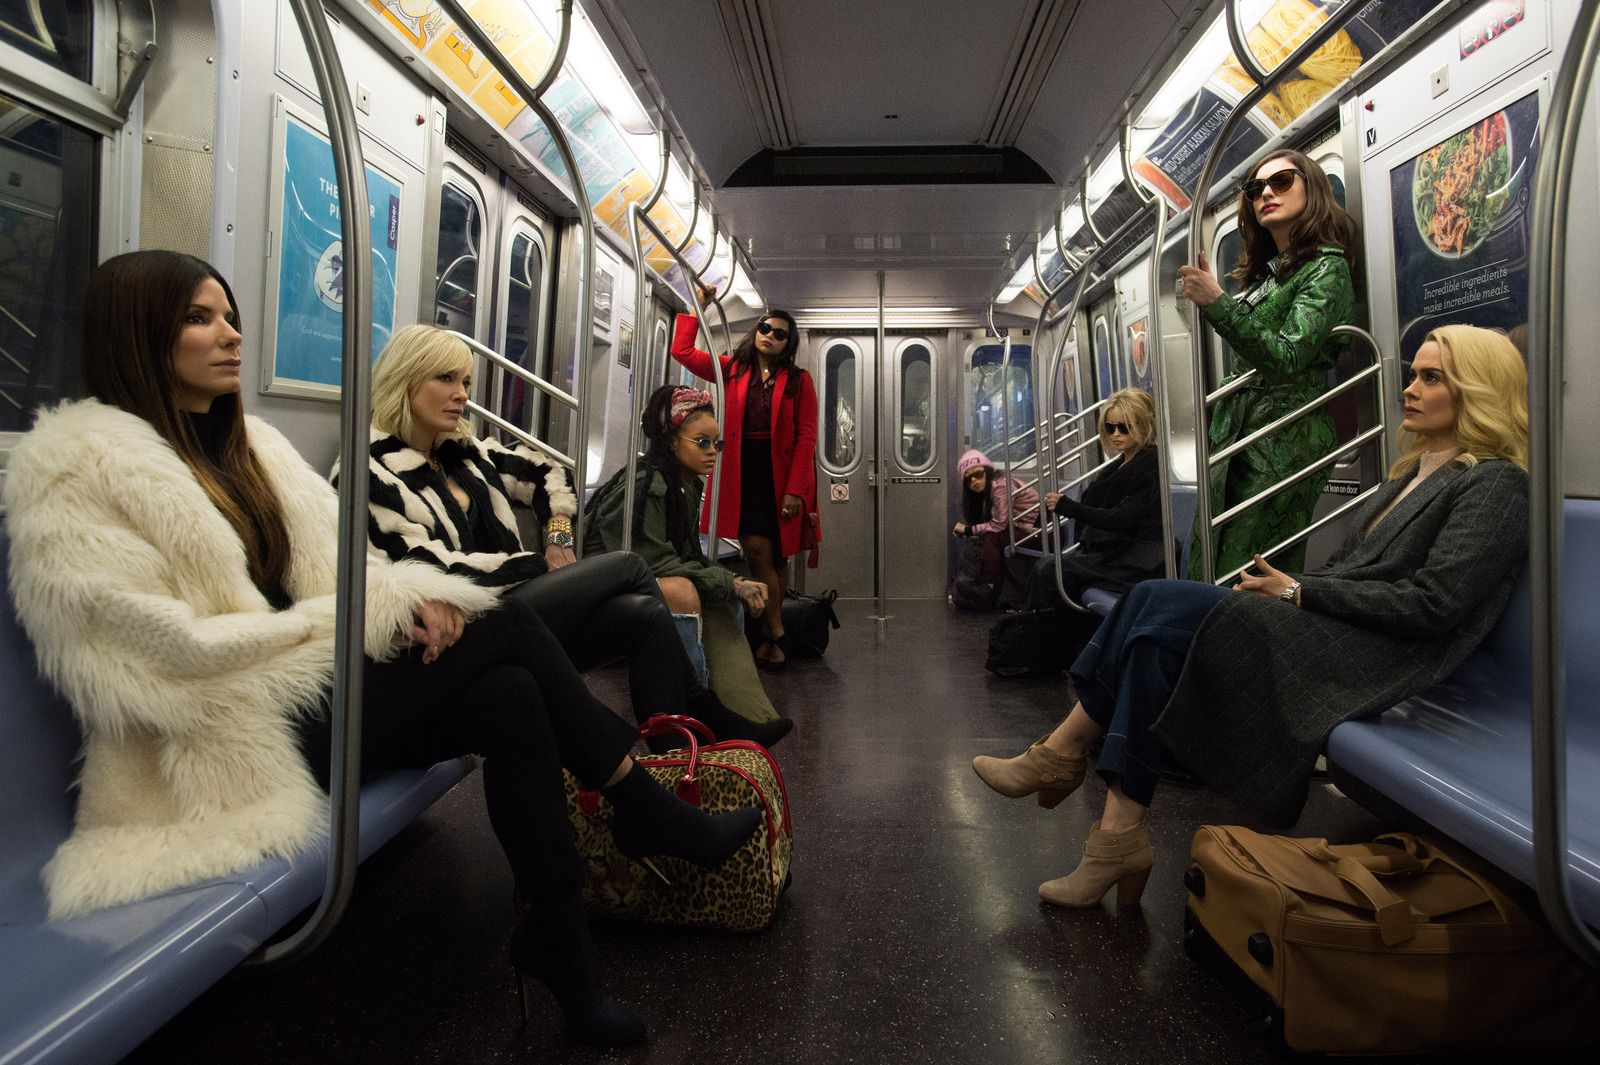 #Cinema : OCEAN'S EIGHT - PREMIÈRE PHOTO OFFICIELLE !